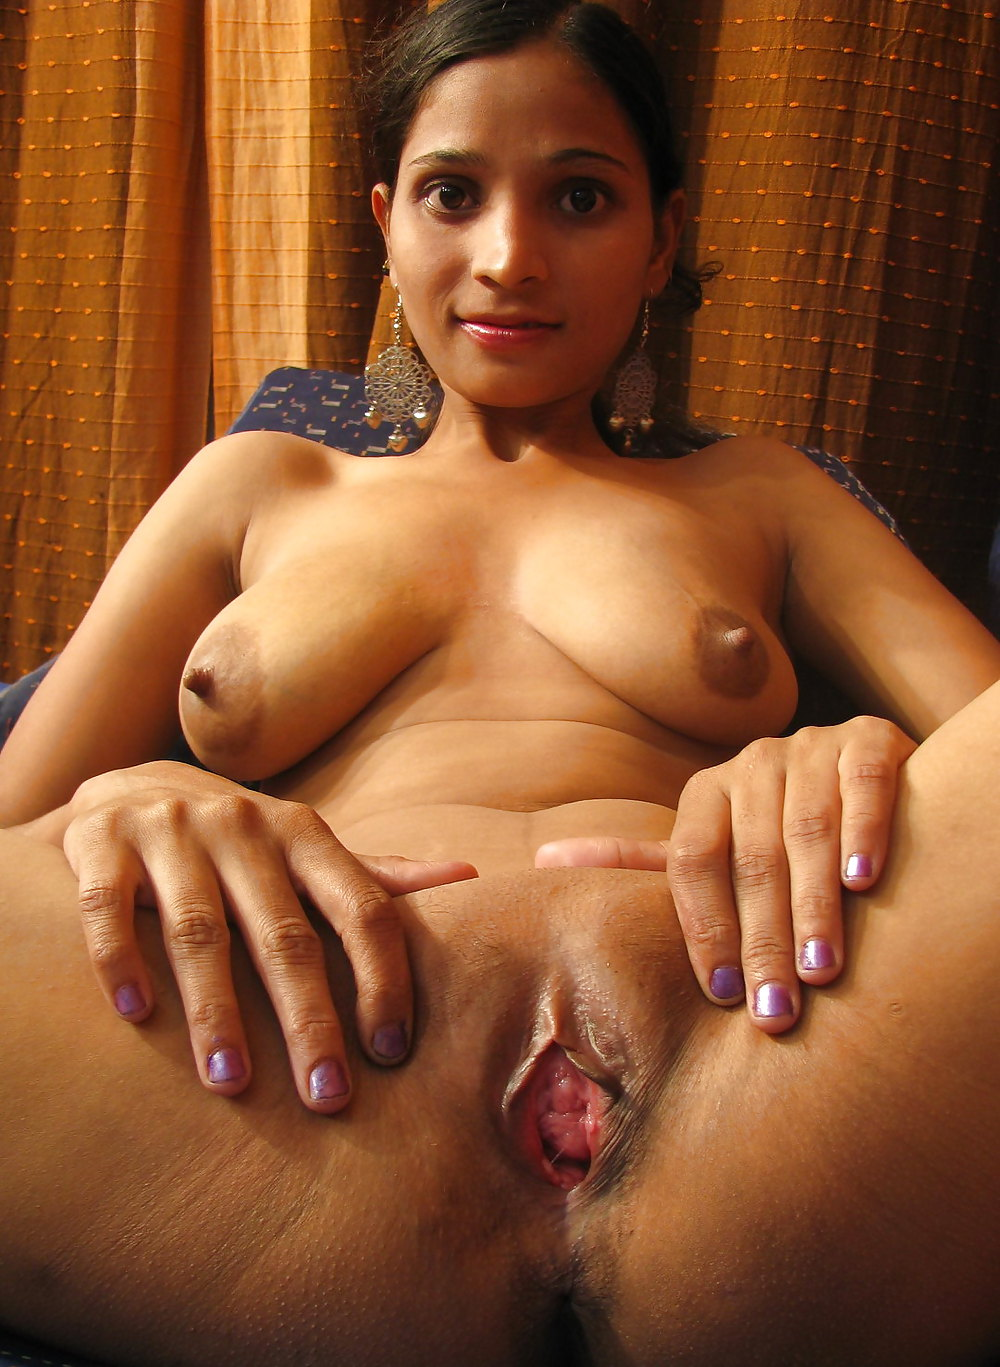 sexting-hot-naked-legal-eastern-indian-women-pics-women